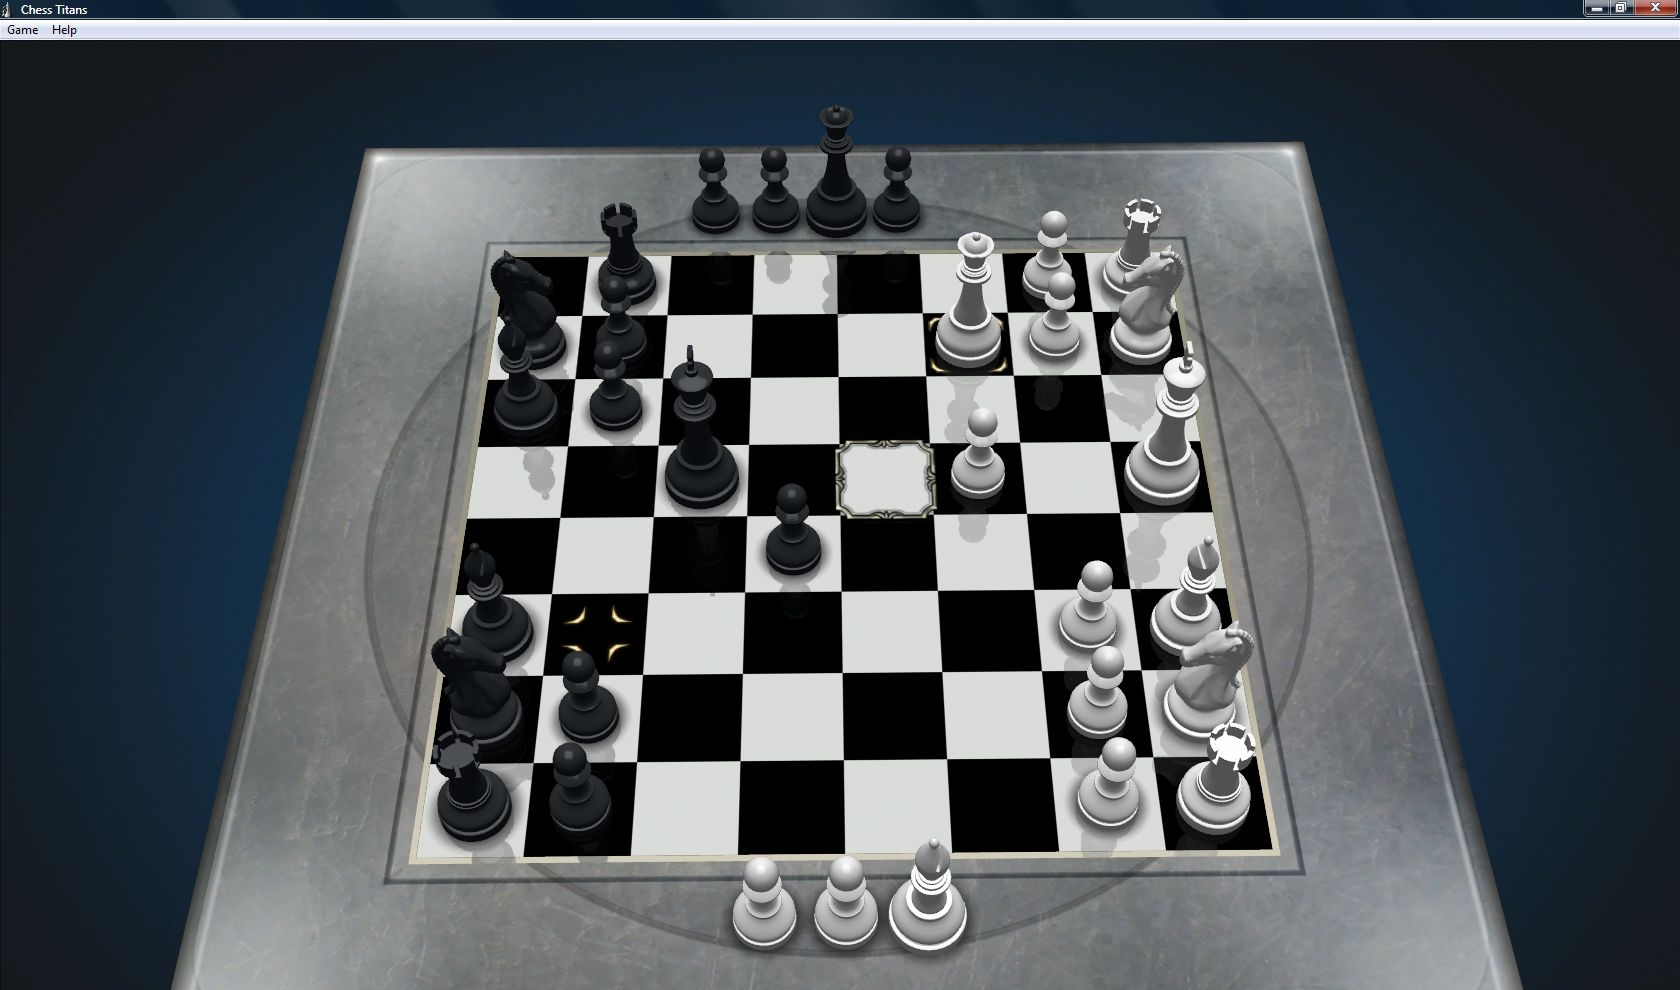 Microsoft Windows Vista (included games) Windows Chess Titans - Porcelain board